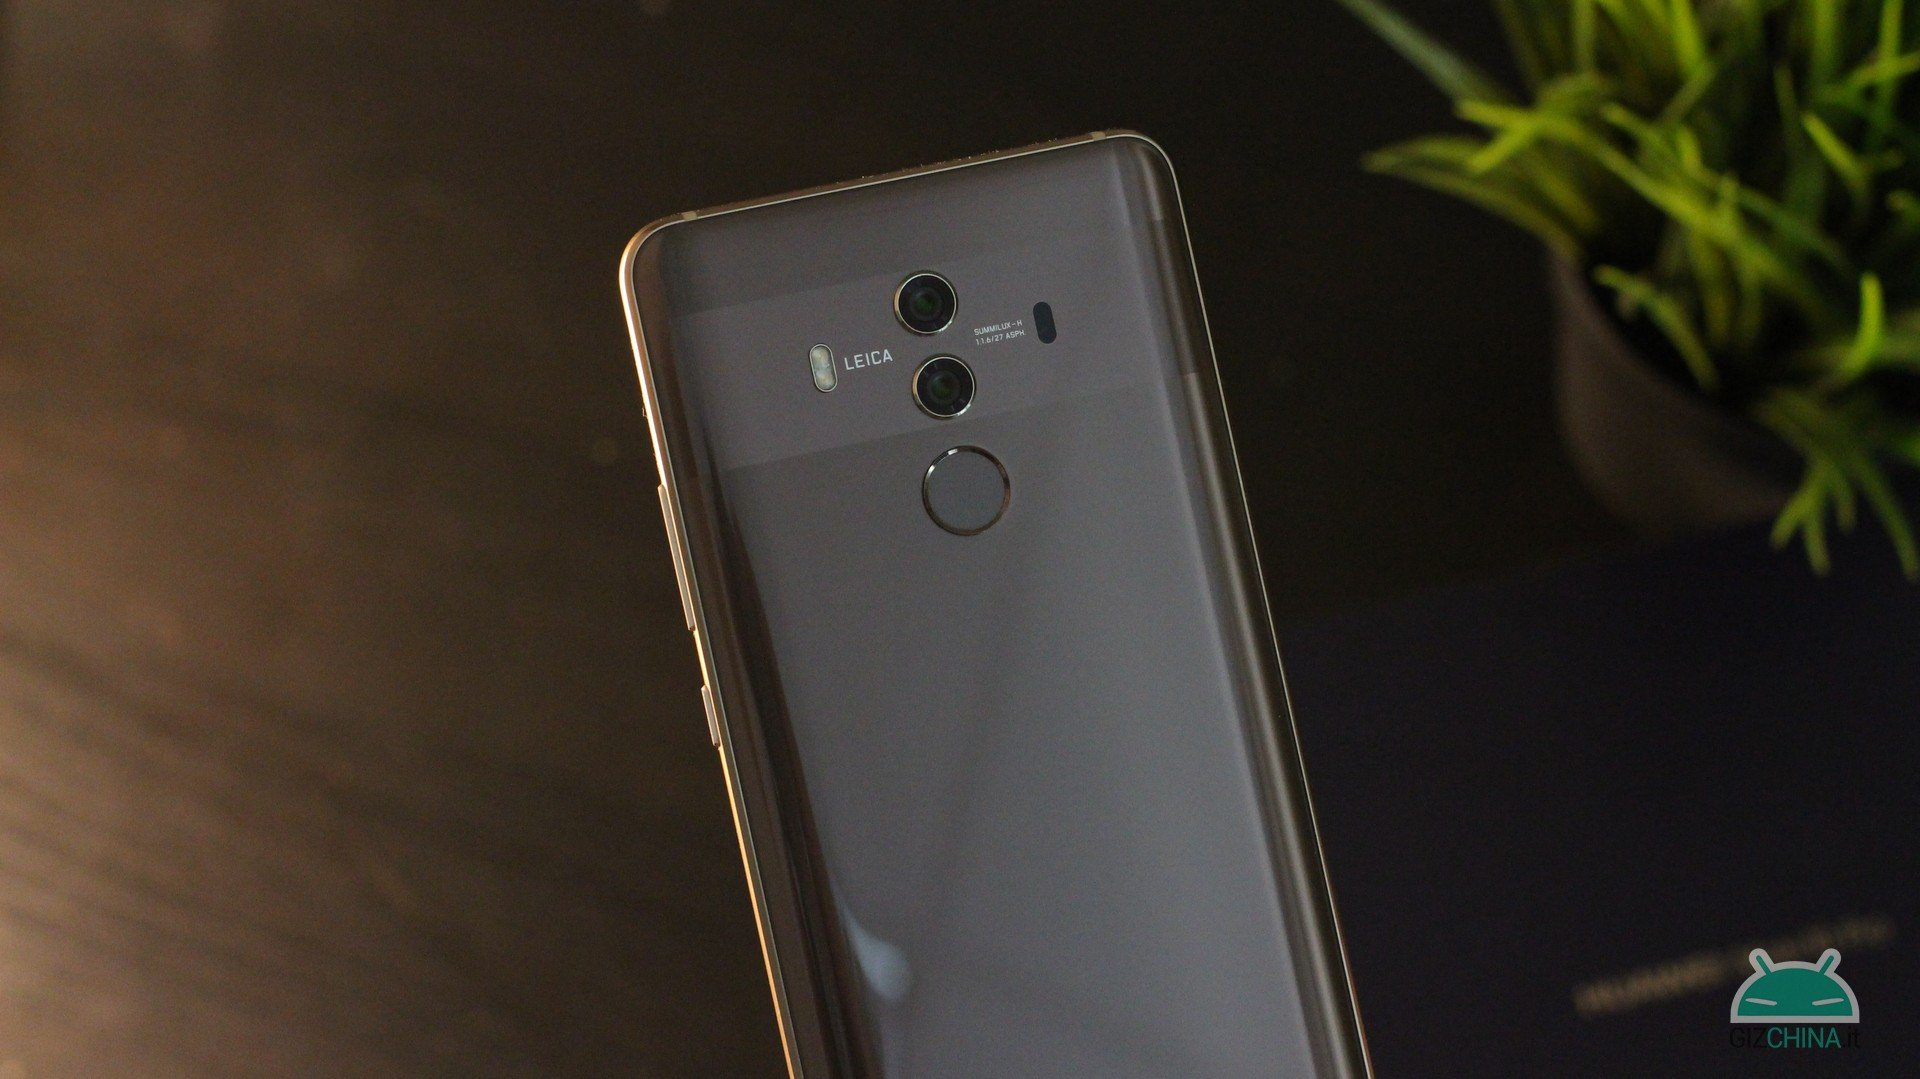 Huawei Mate 10 Pro: TWRP 3 2 1-0 recovery is available